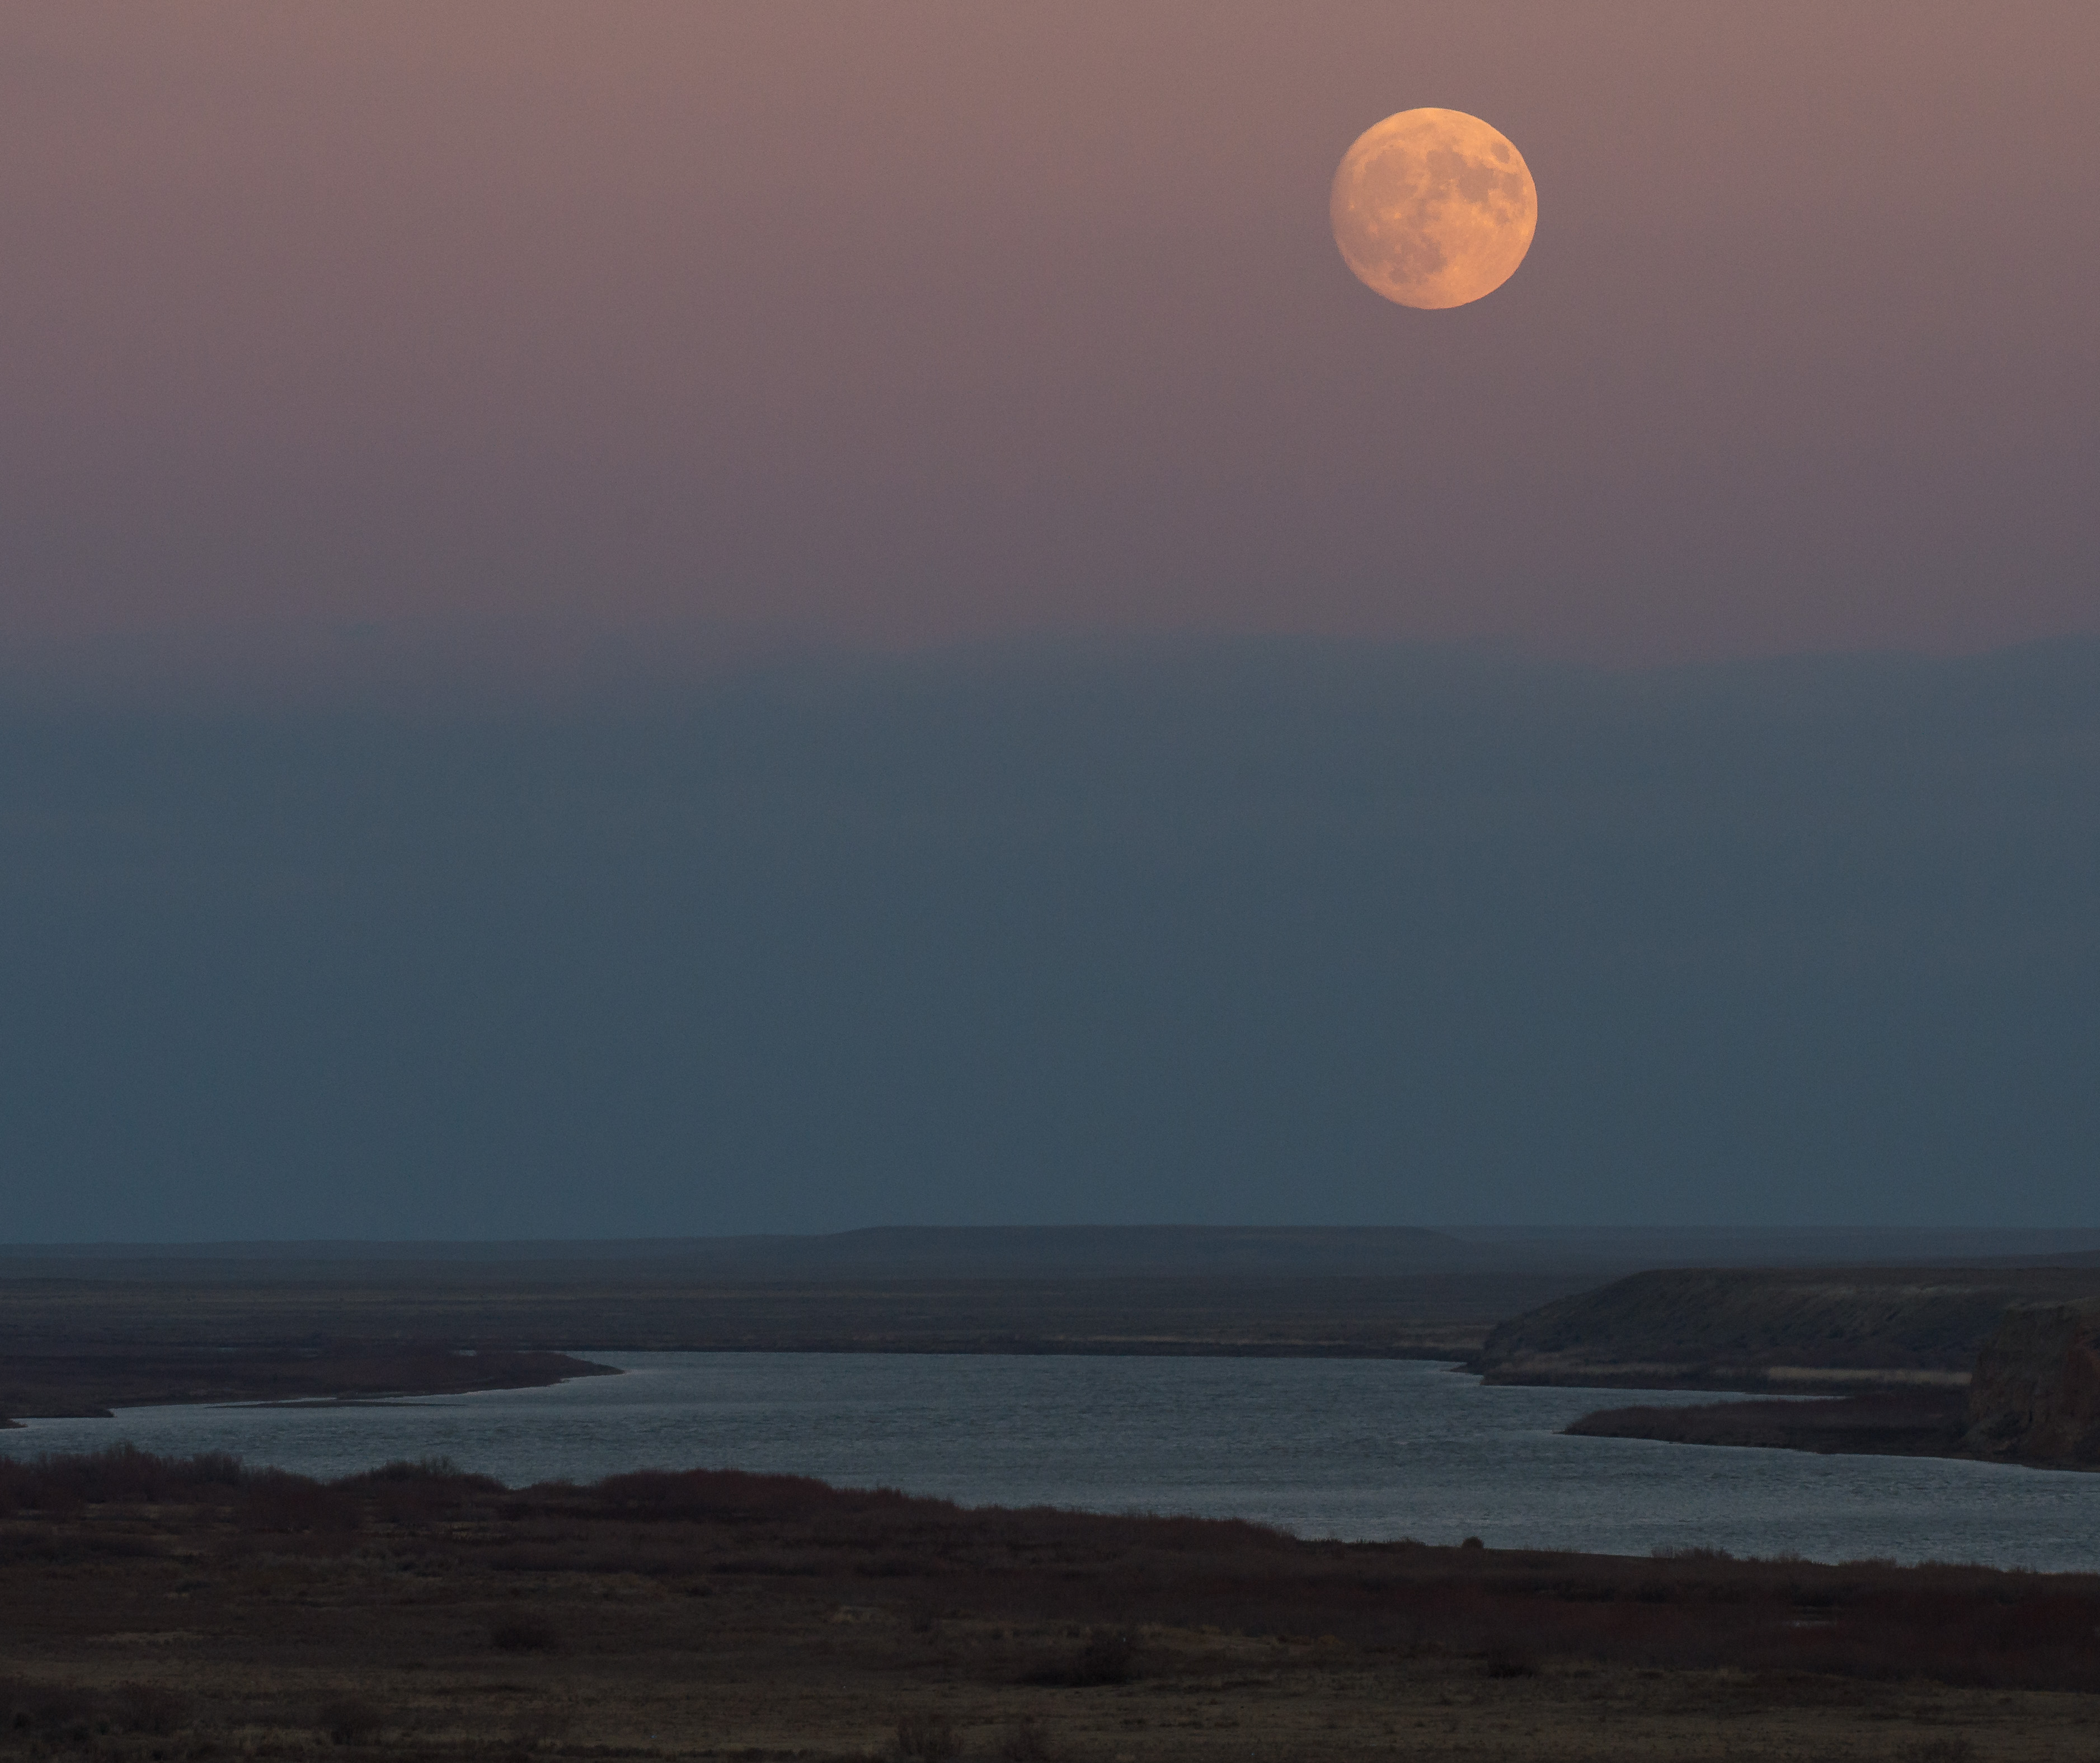 Moonrise over the Syr Darya river.